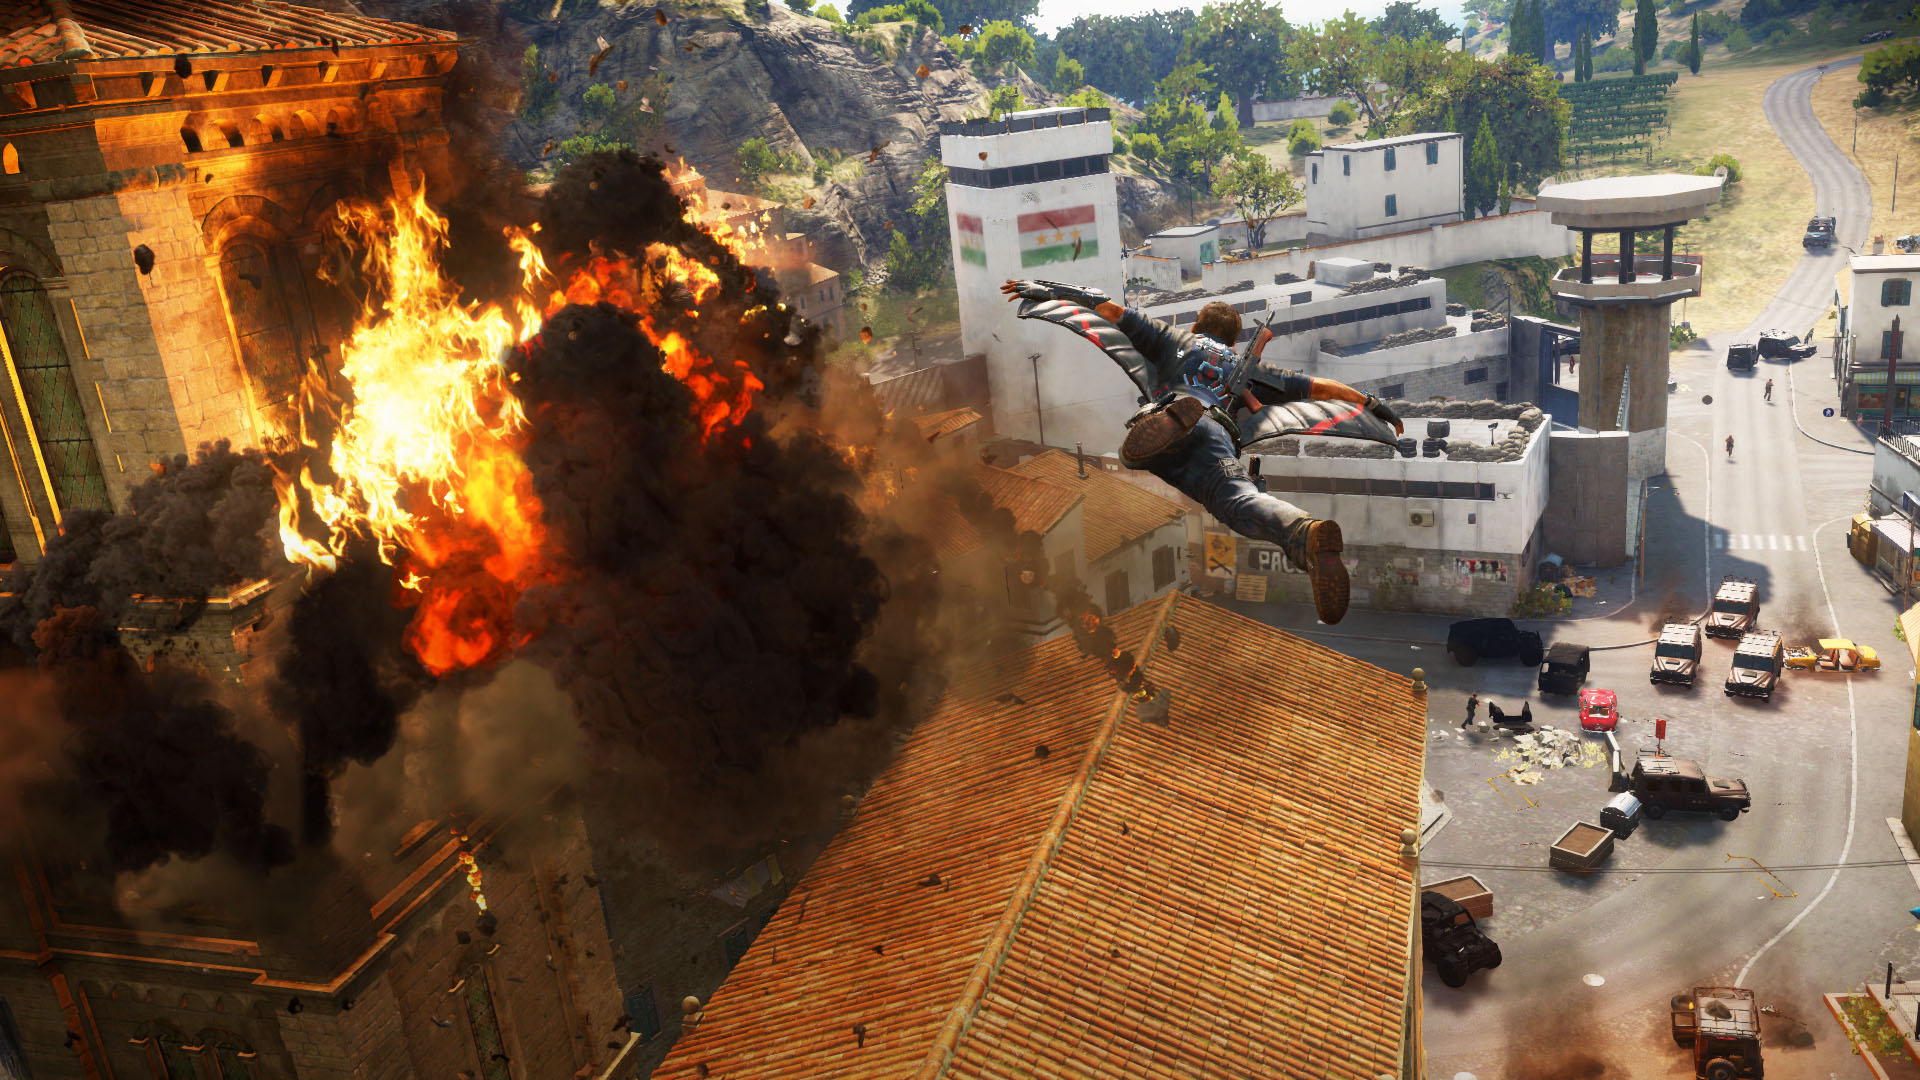 10 minutes of Just Cause 3 gameplay on YouTube